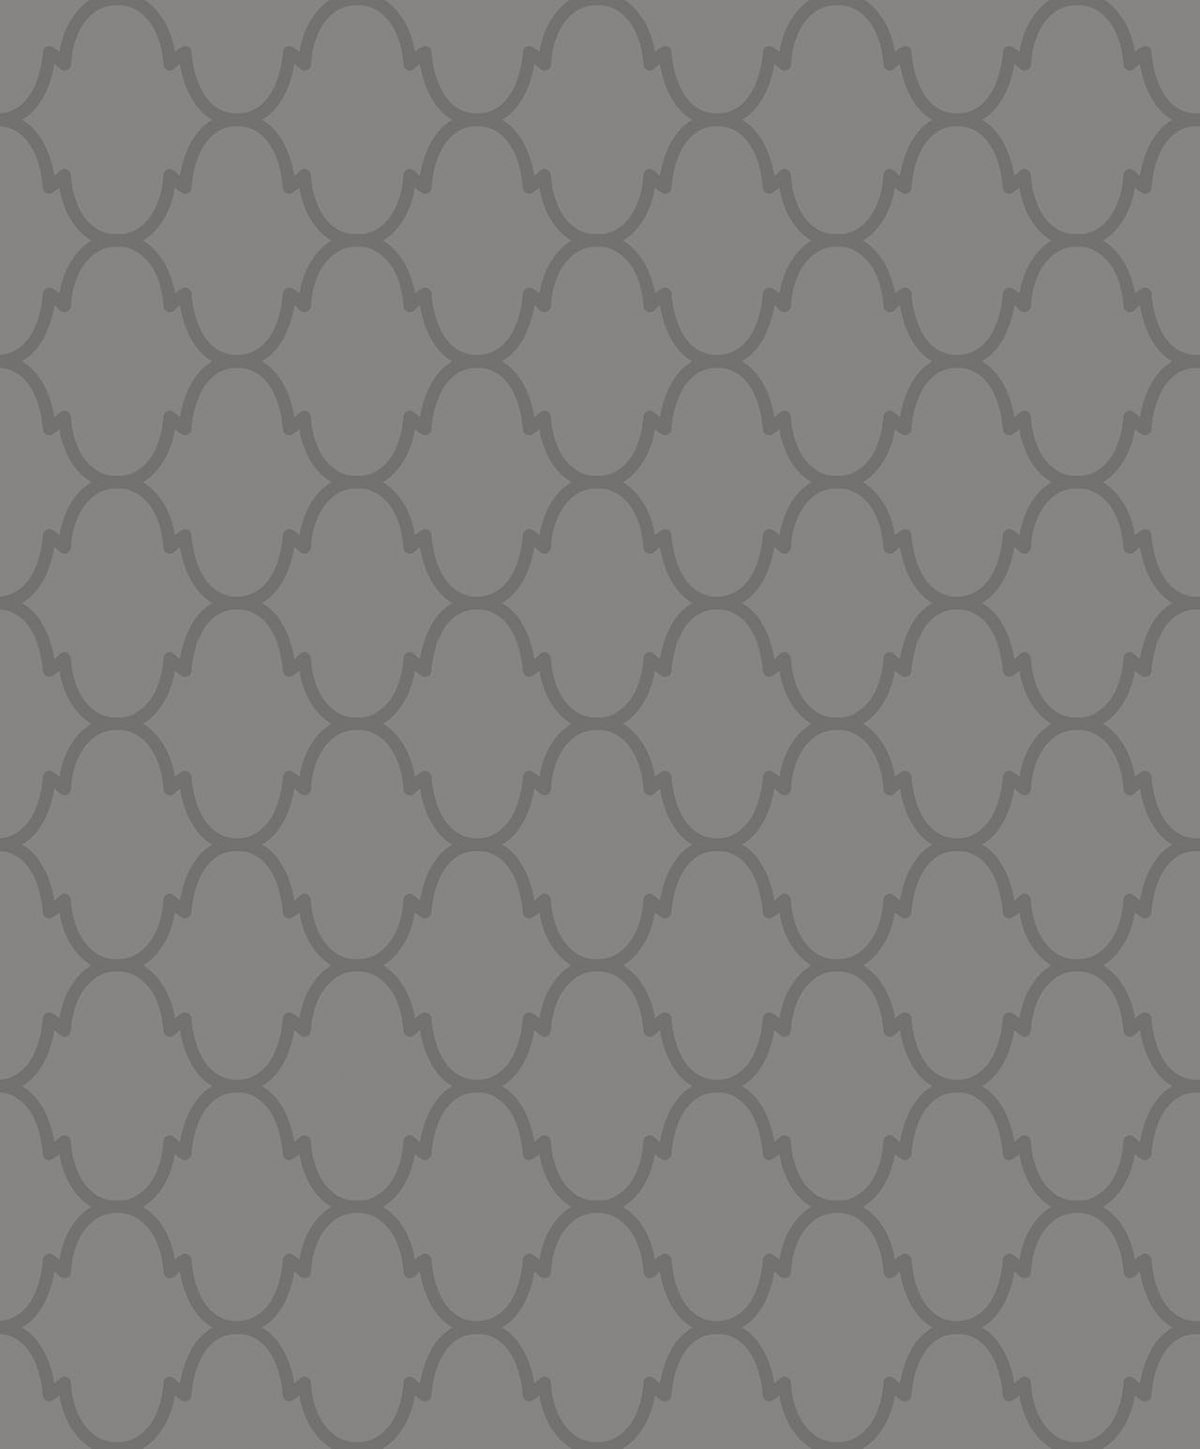 MARRAKESH GREY B decadence wallpaper-DC00158